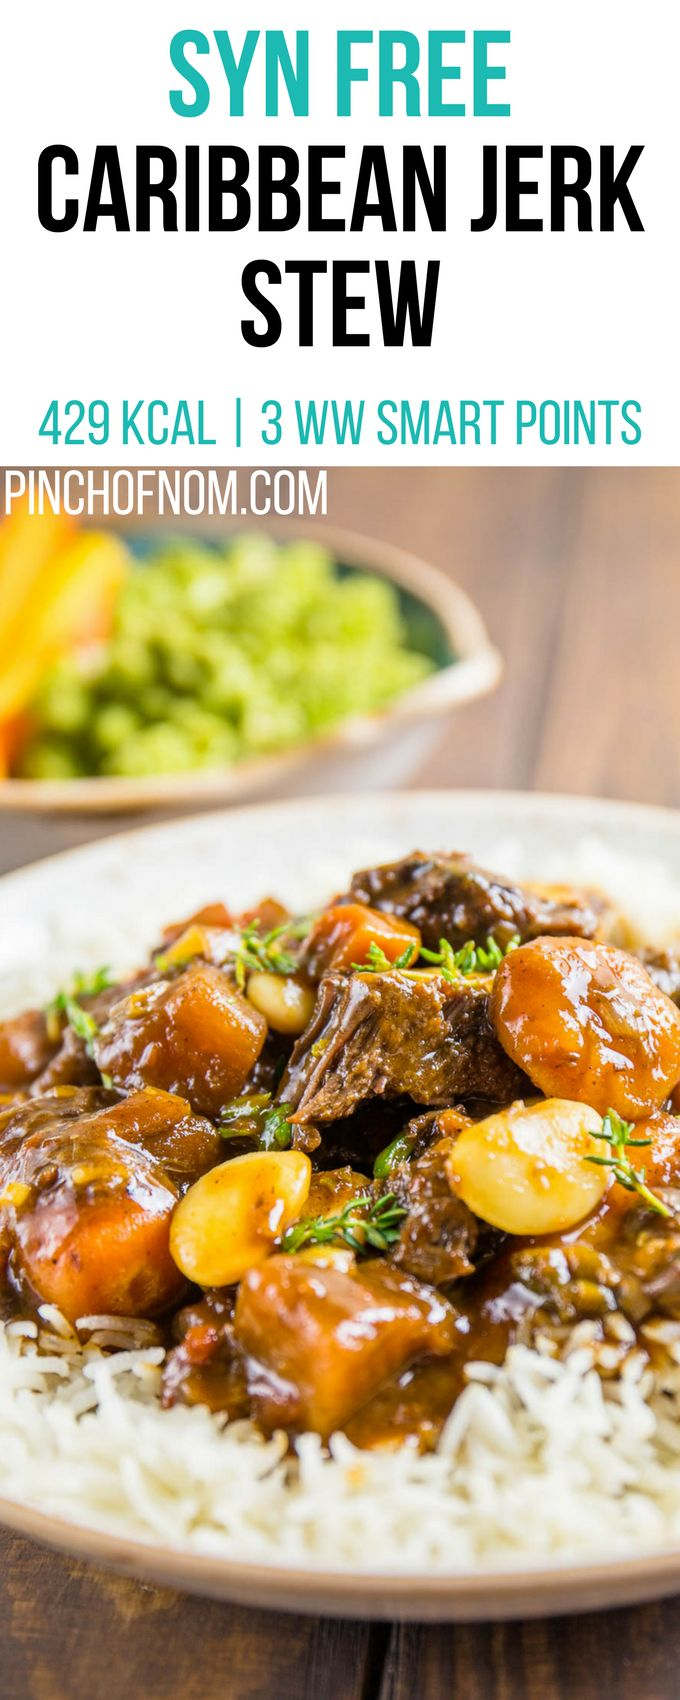 Syn Free Caribbean Jerk Stew   Pinch Of Nom Slimming World Recipes    429 kcal   Syn Free   3 Weight Watchers Smart Points